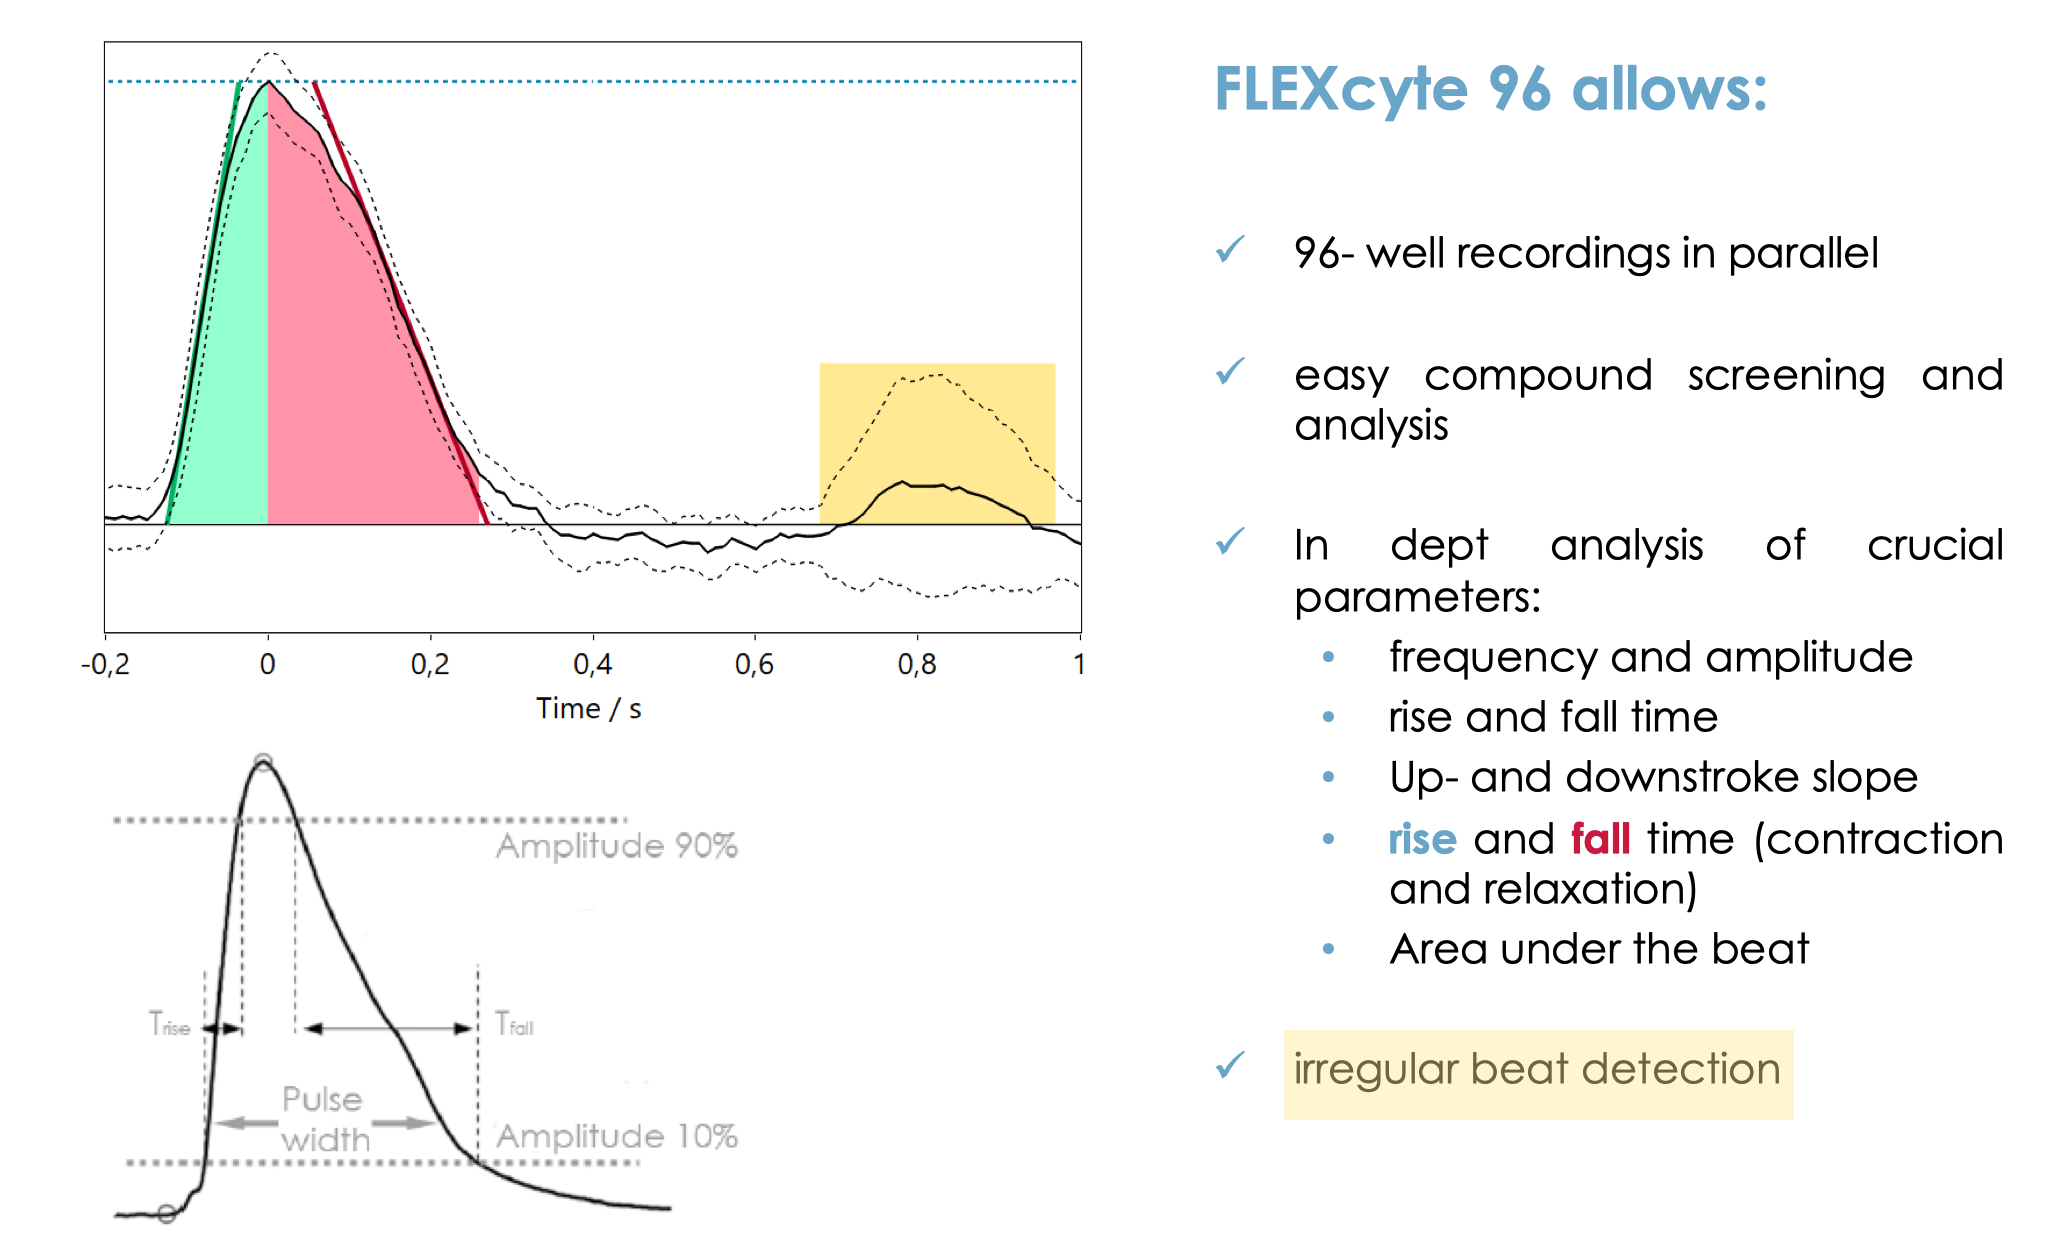 FLEXcyte 96 Analysis New